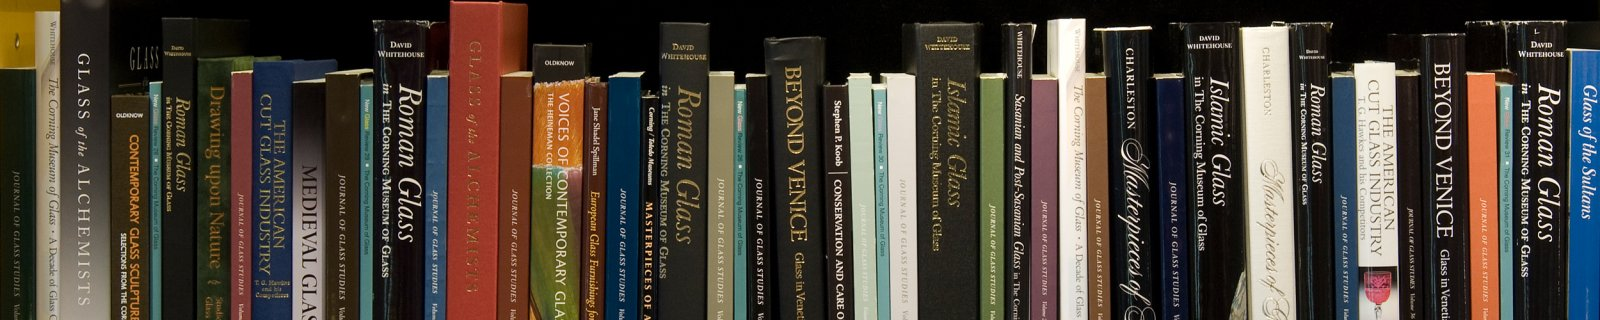 The Museum publishes several books each year, as well as two annual journals.